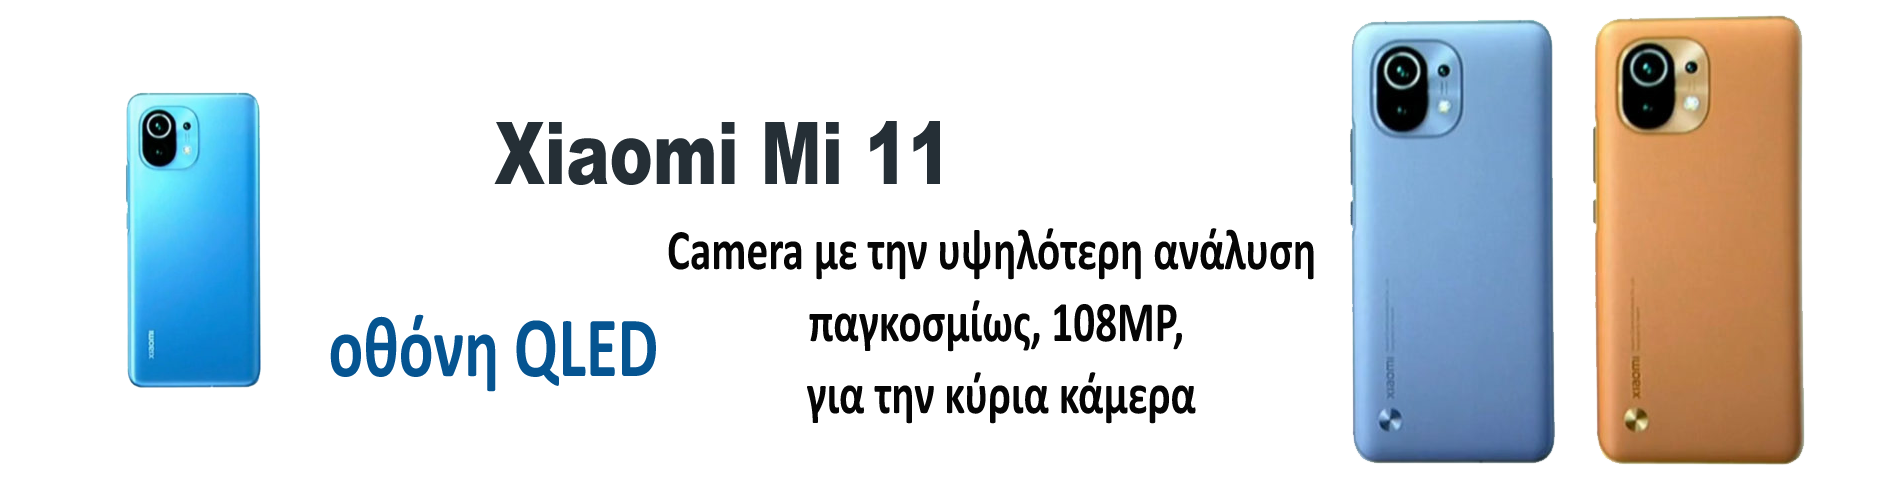 m11png